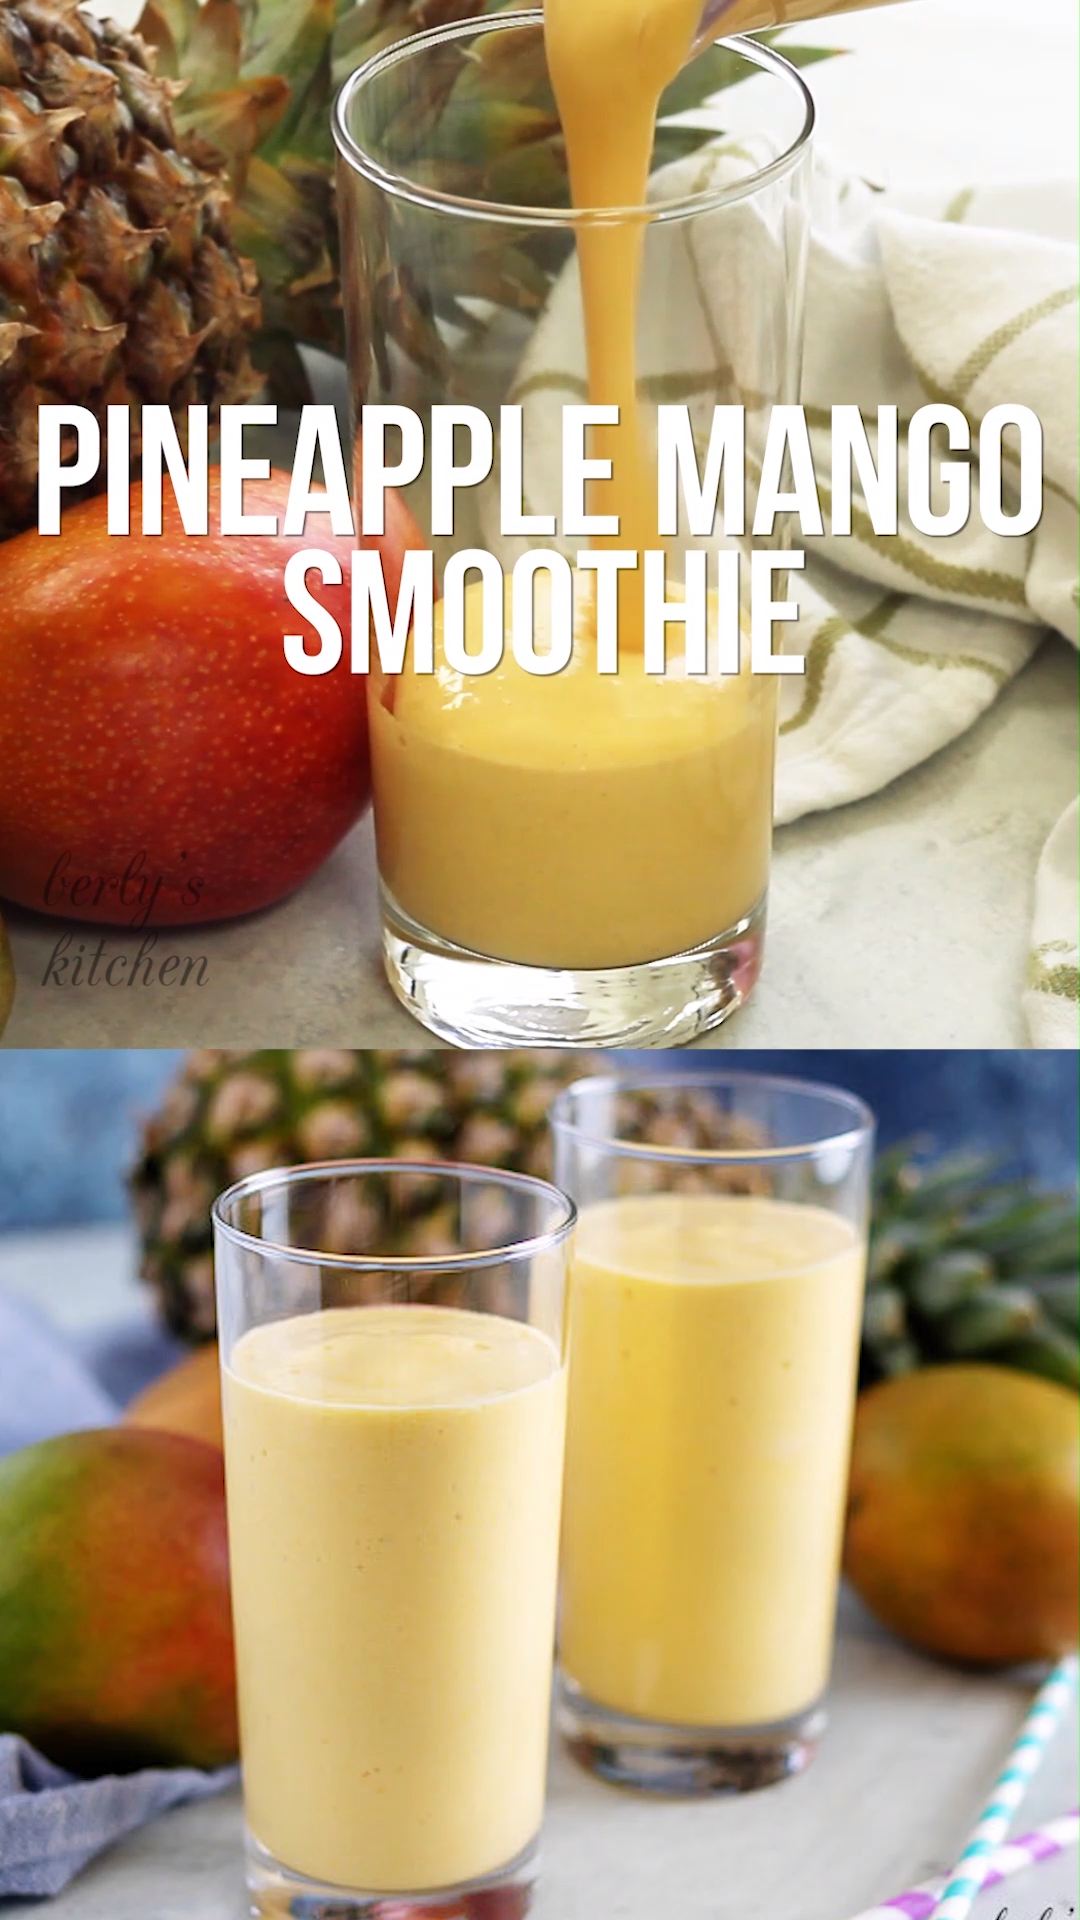 This Pineapple Mango Smoothie is made with coconut milk, pineapple, and mango. This Pineapple Mango Smoothie recipe has frozen fruit, no yogurt, and is easy to make in the blender. Food video, recipe video #berlyskitchen